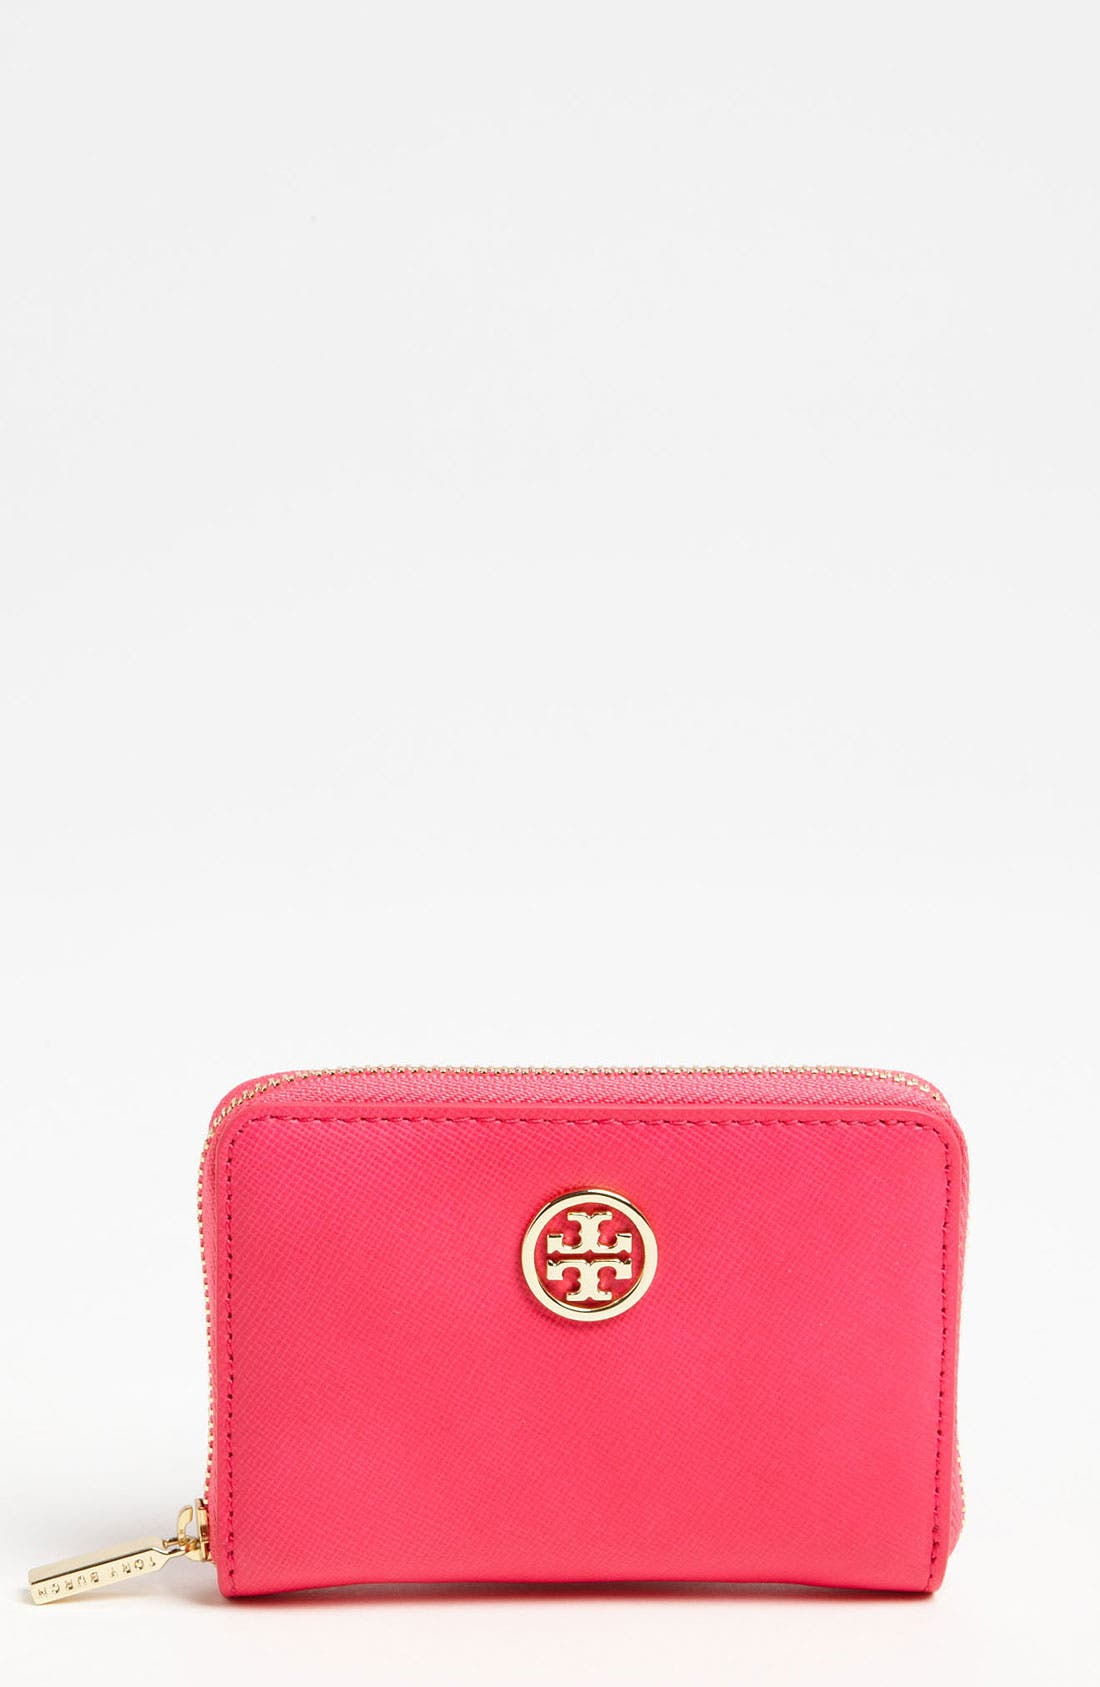 Alternate Image 1 Selected - Tory Burch 'Robinson' Zip Coin Case